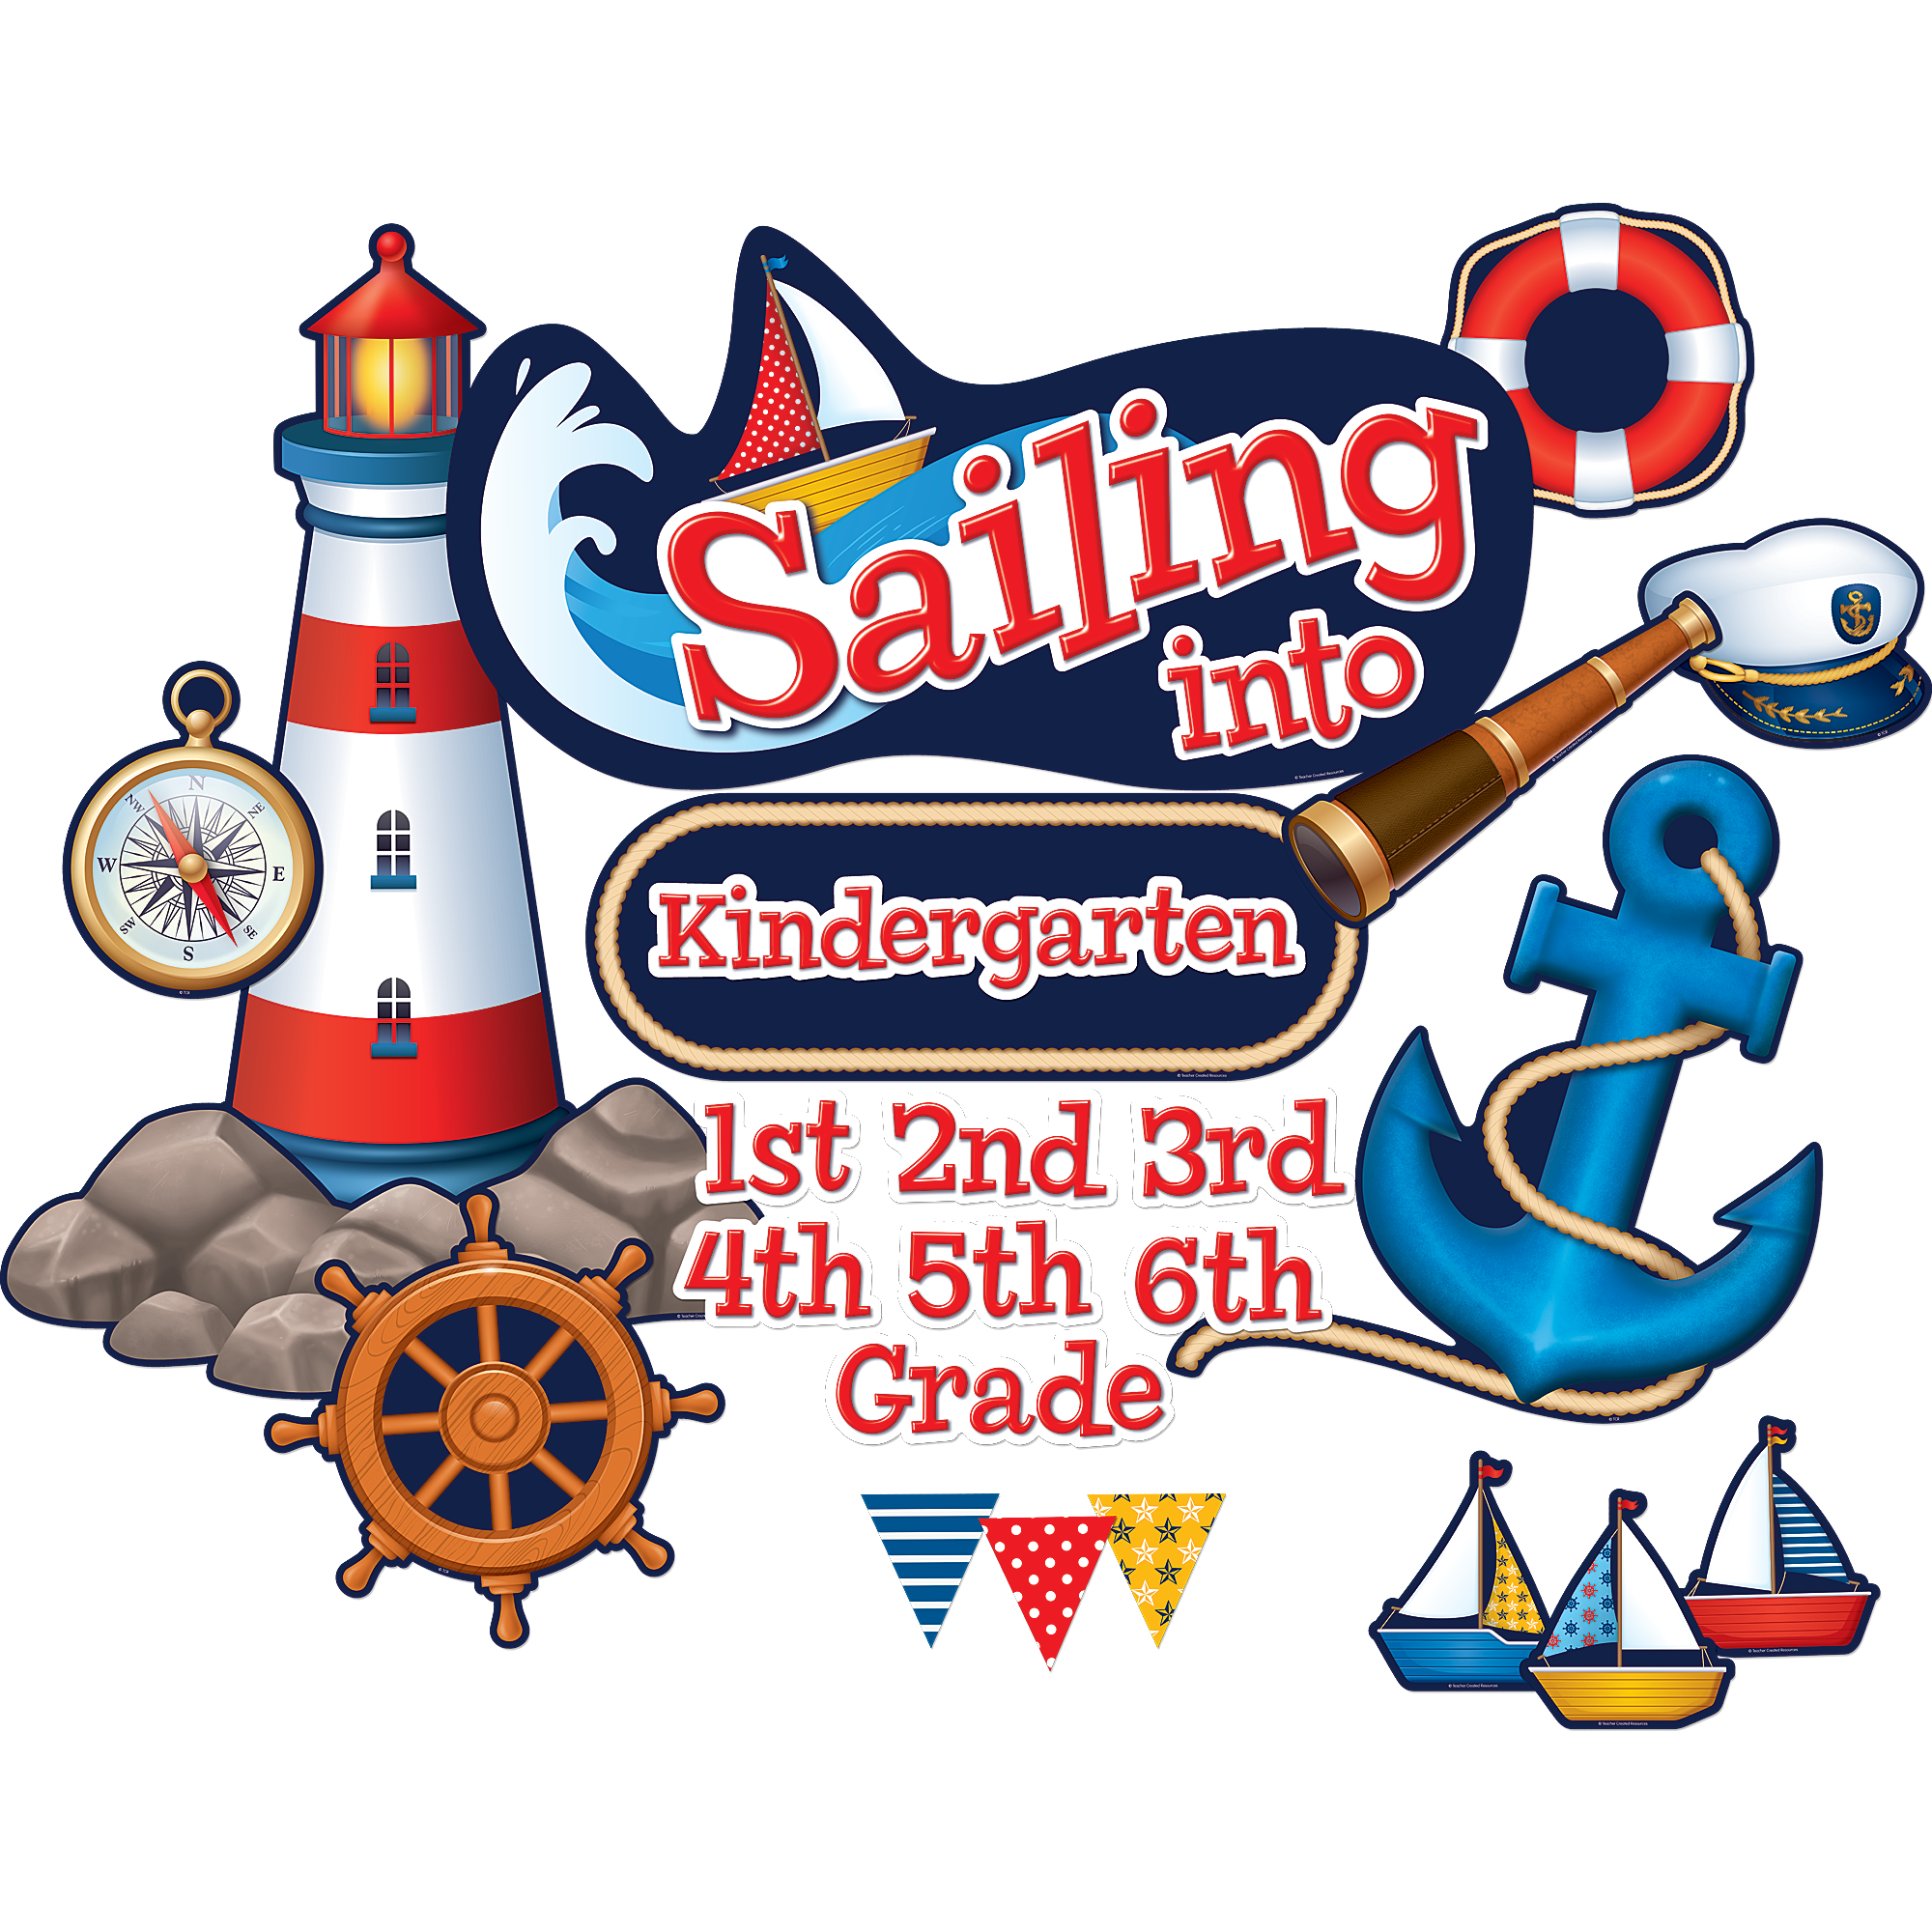 Lunchbox clipart preschool classroom. Sailing into bulletin board